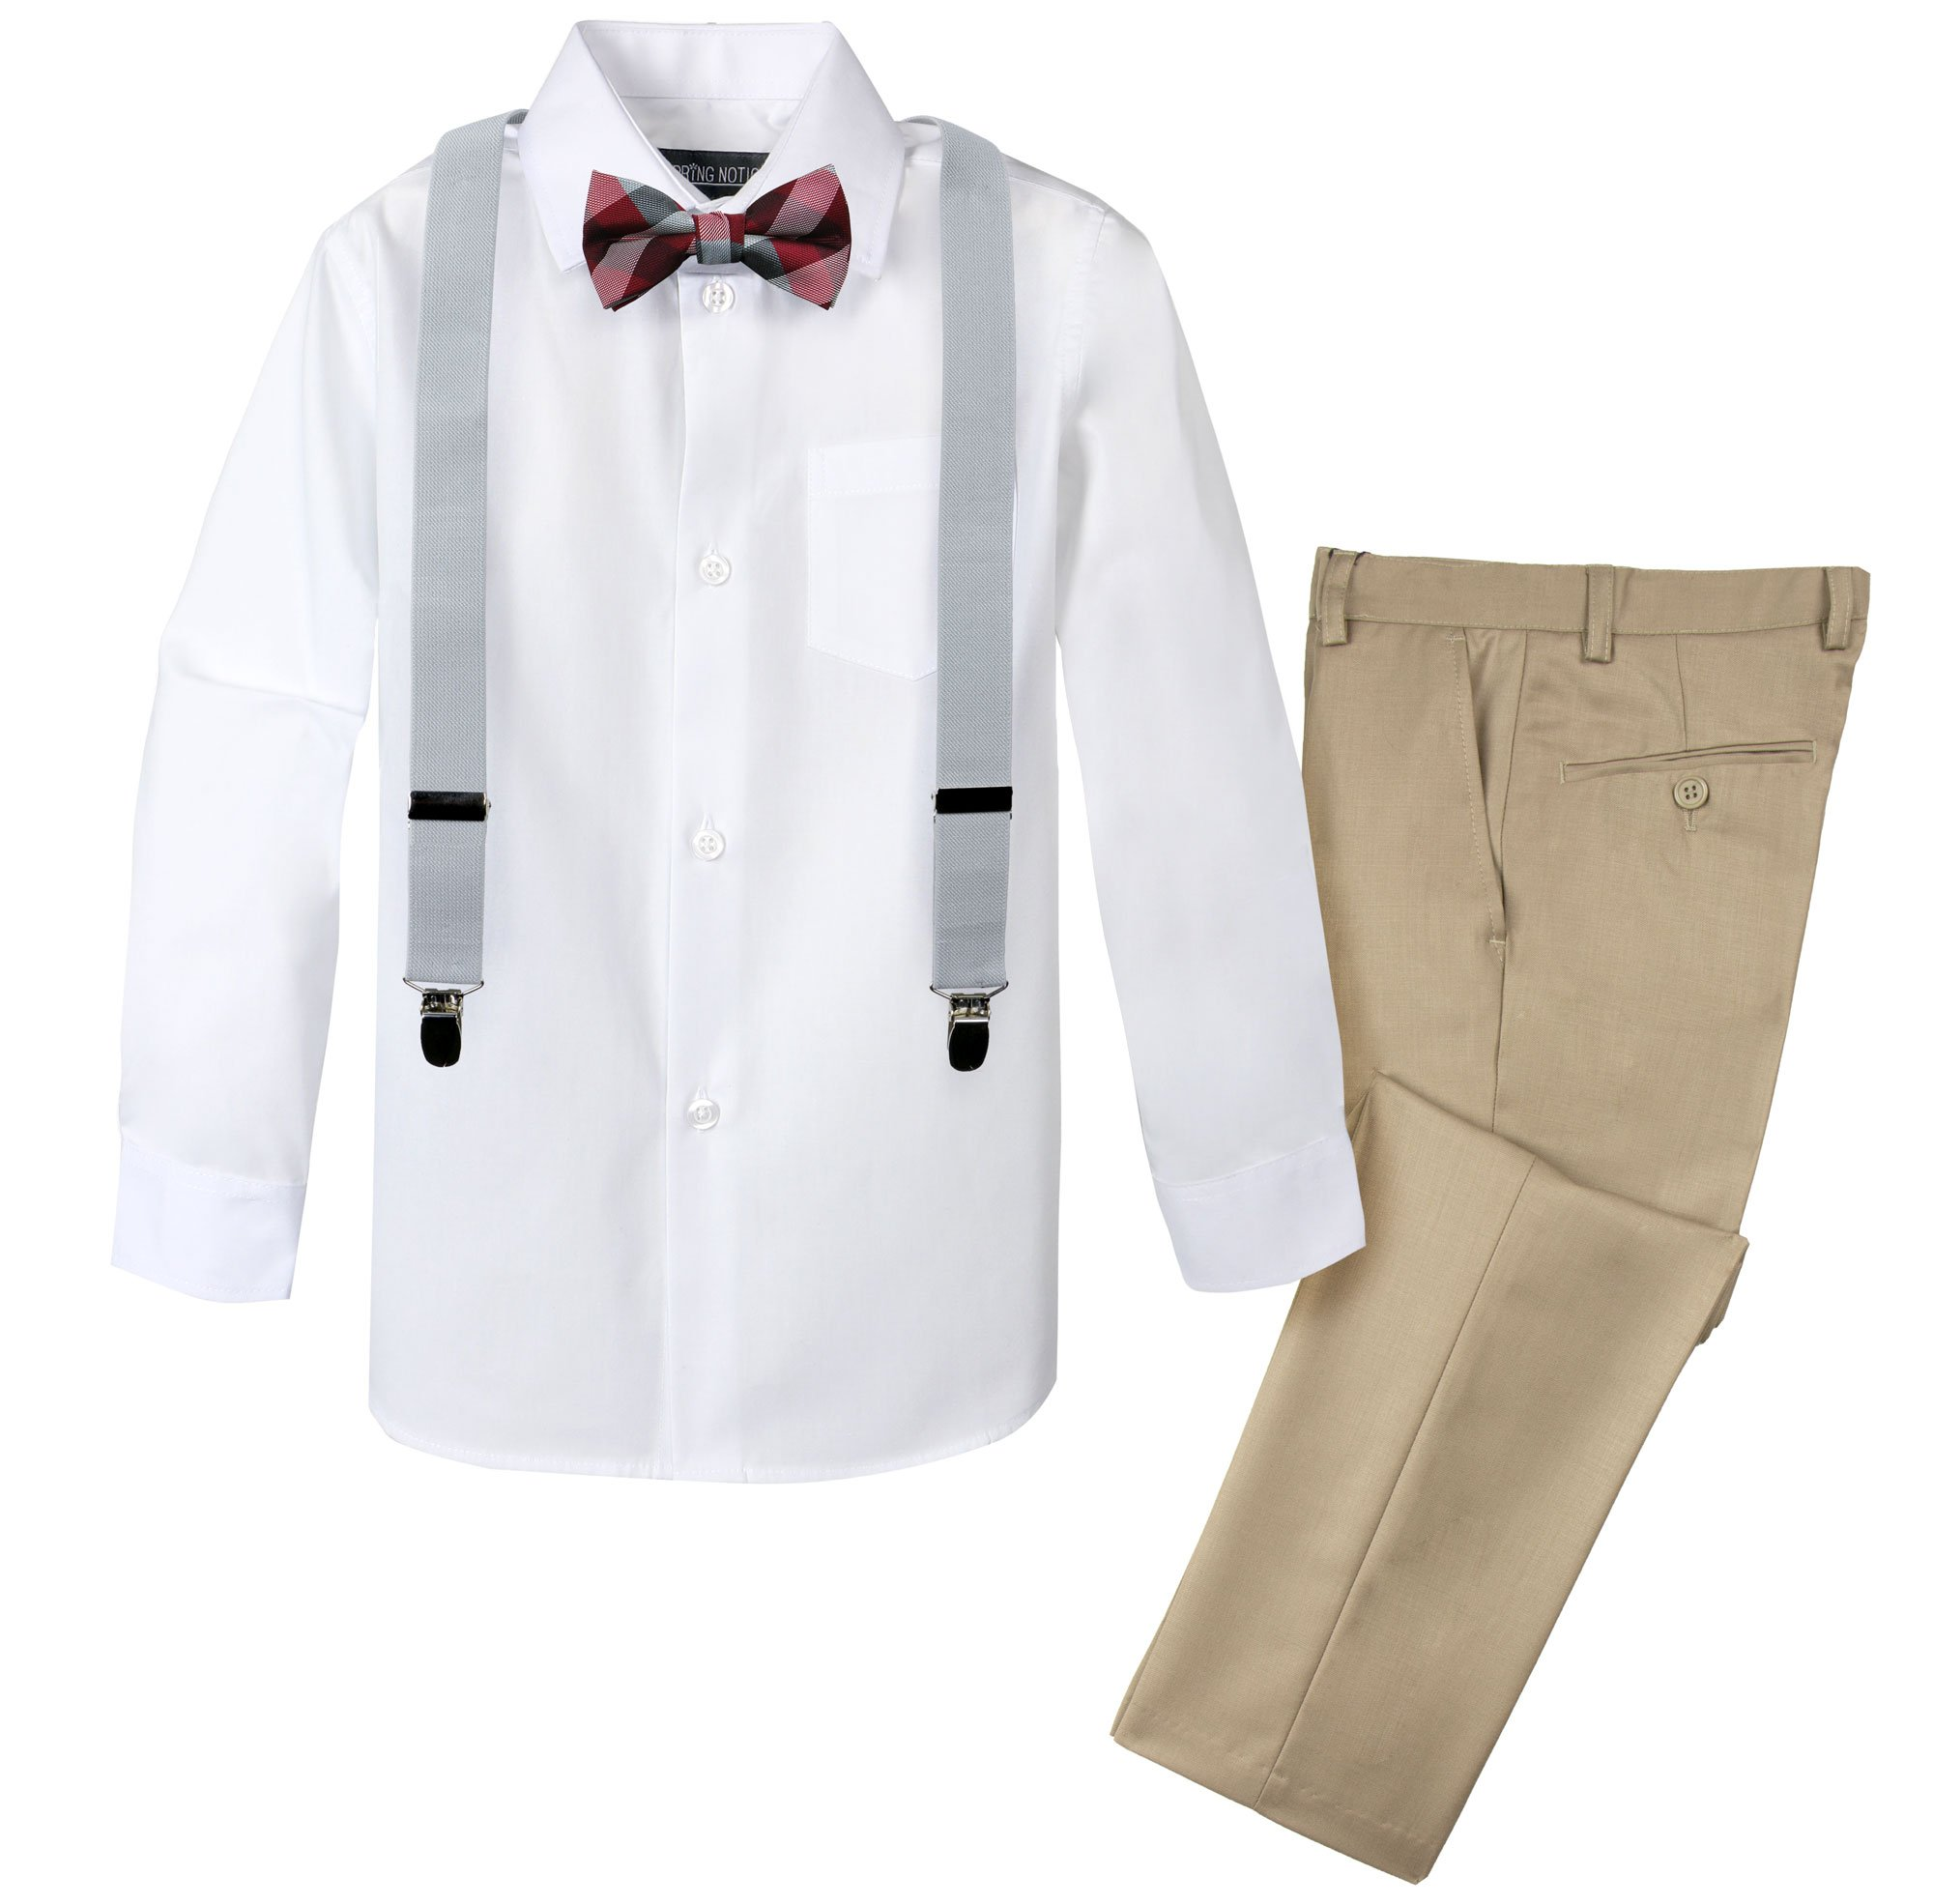 Spring Notion Boys' 4-Piece Patterned Dress up Pants Set 4T Tan/Silver-Red